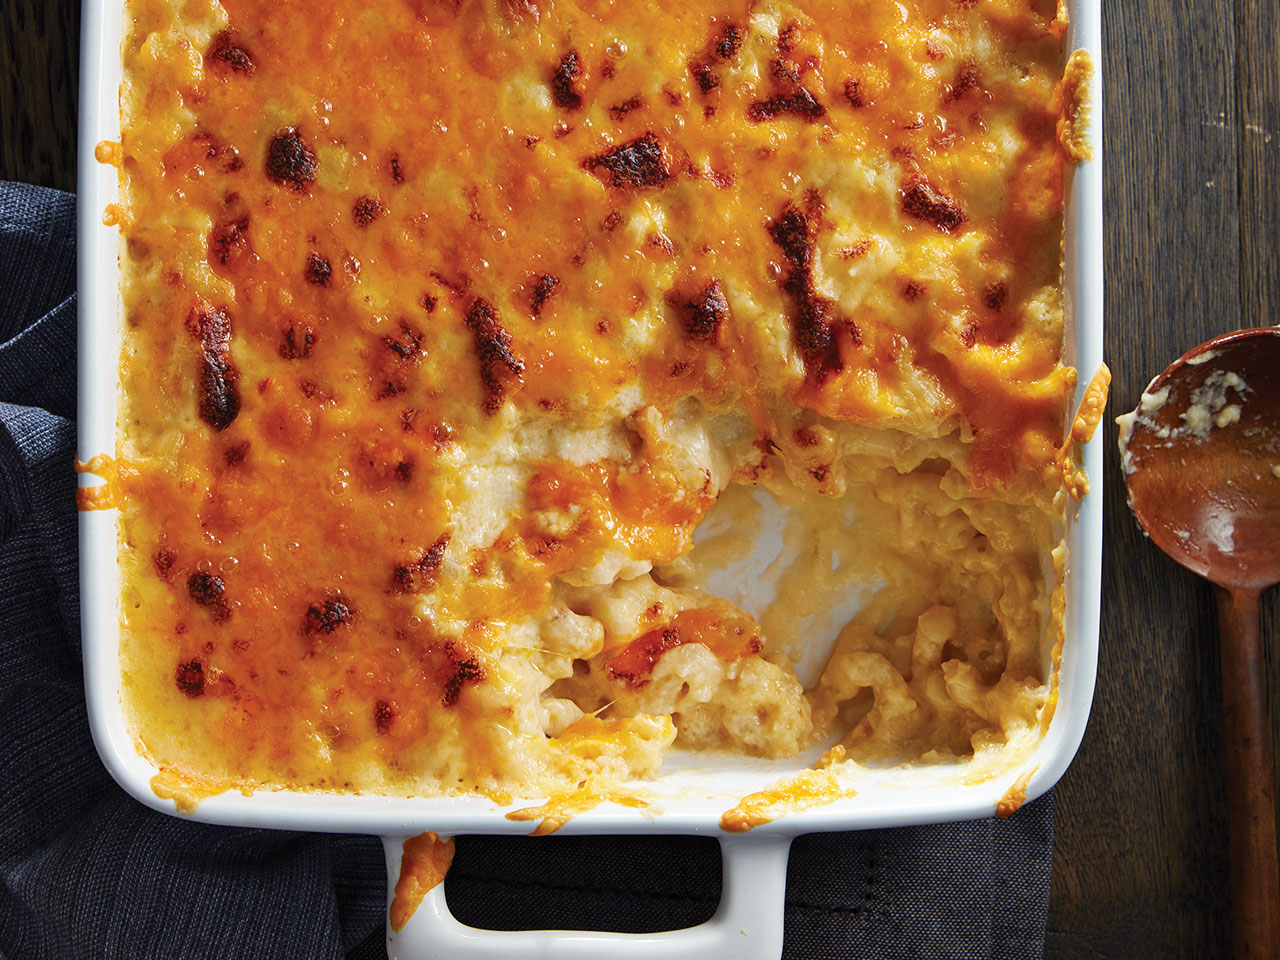 baked pasta recipes: classic macaroni and cheese baked pasta recipe